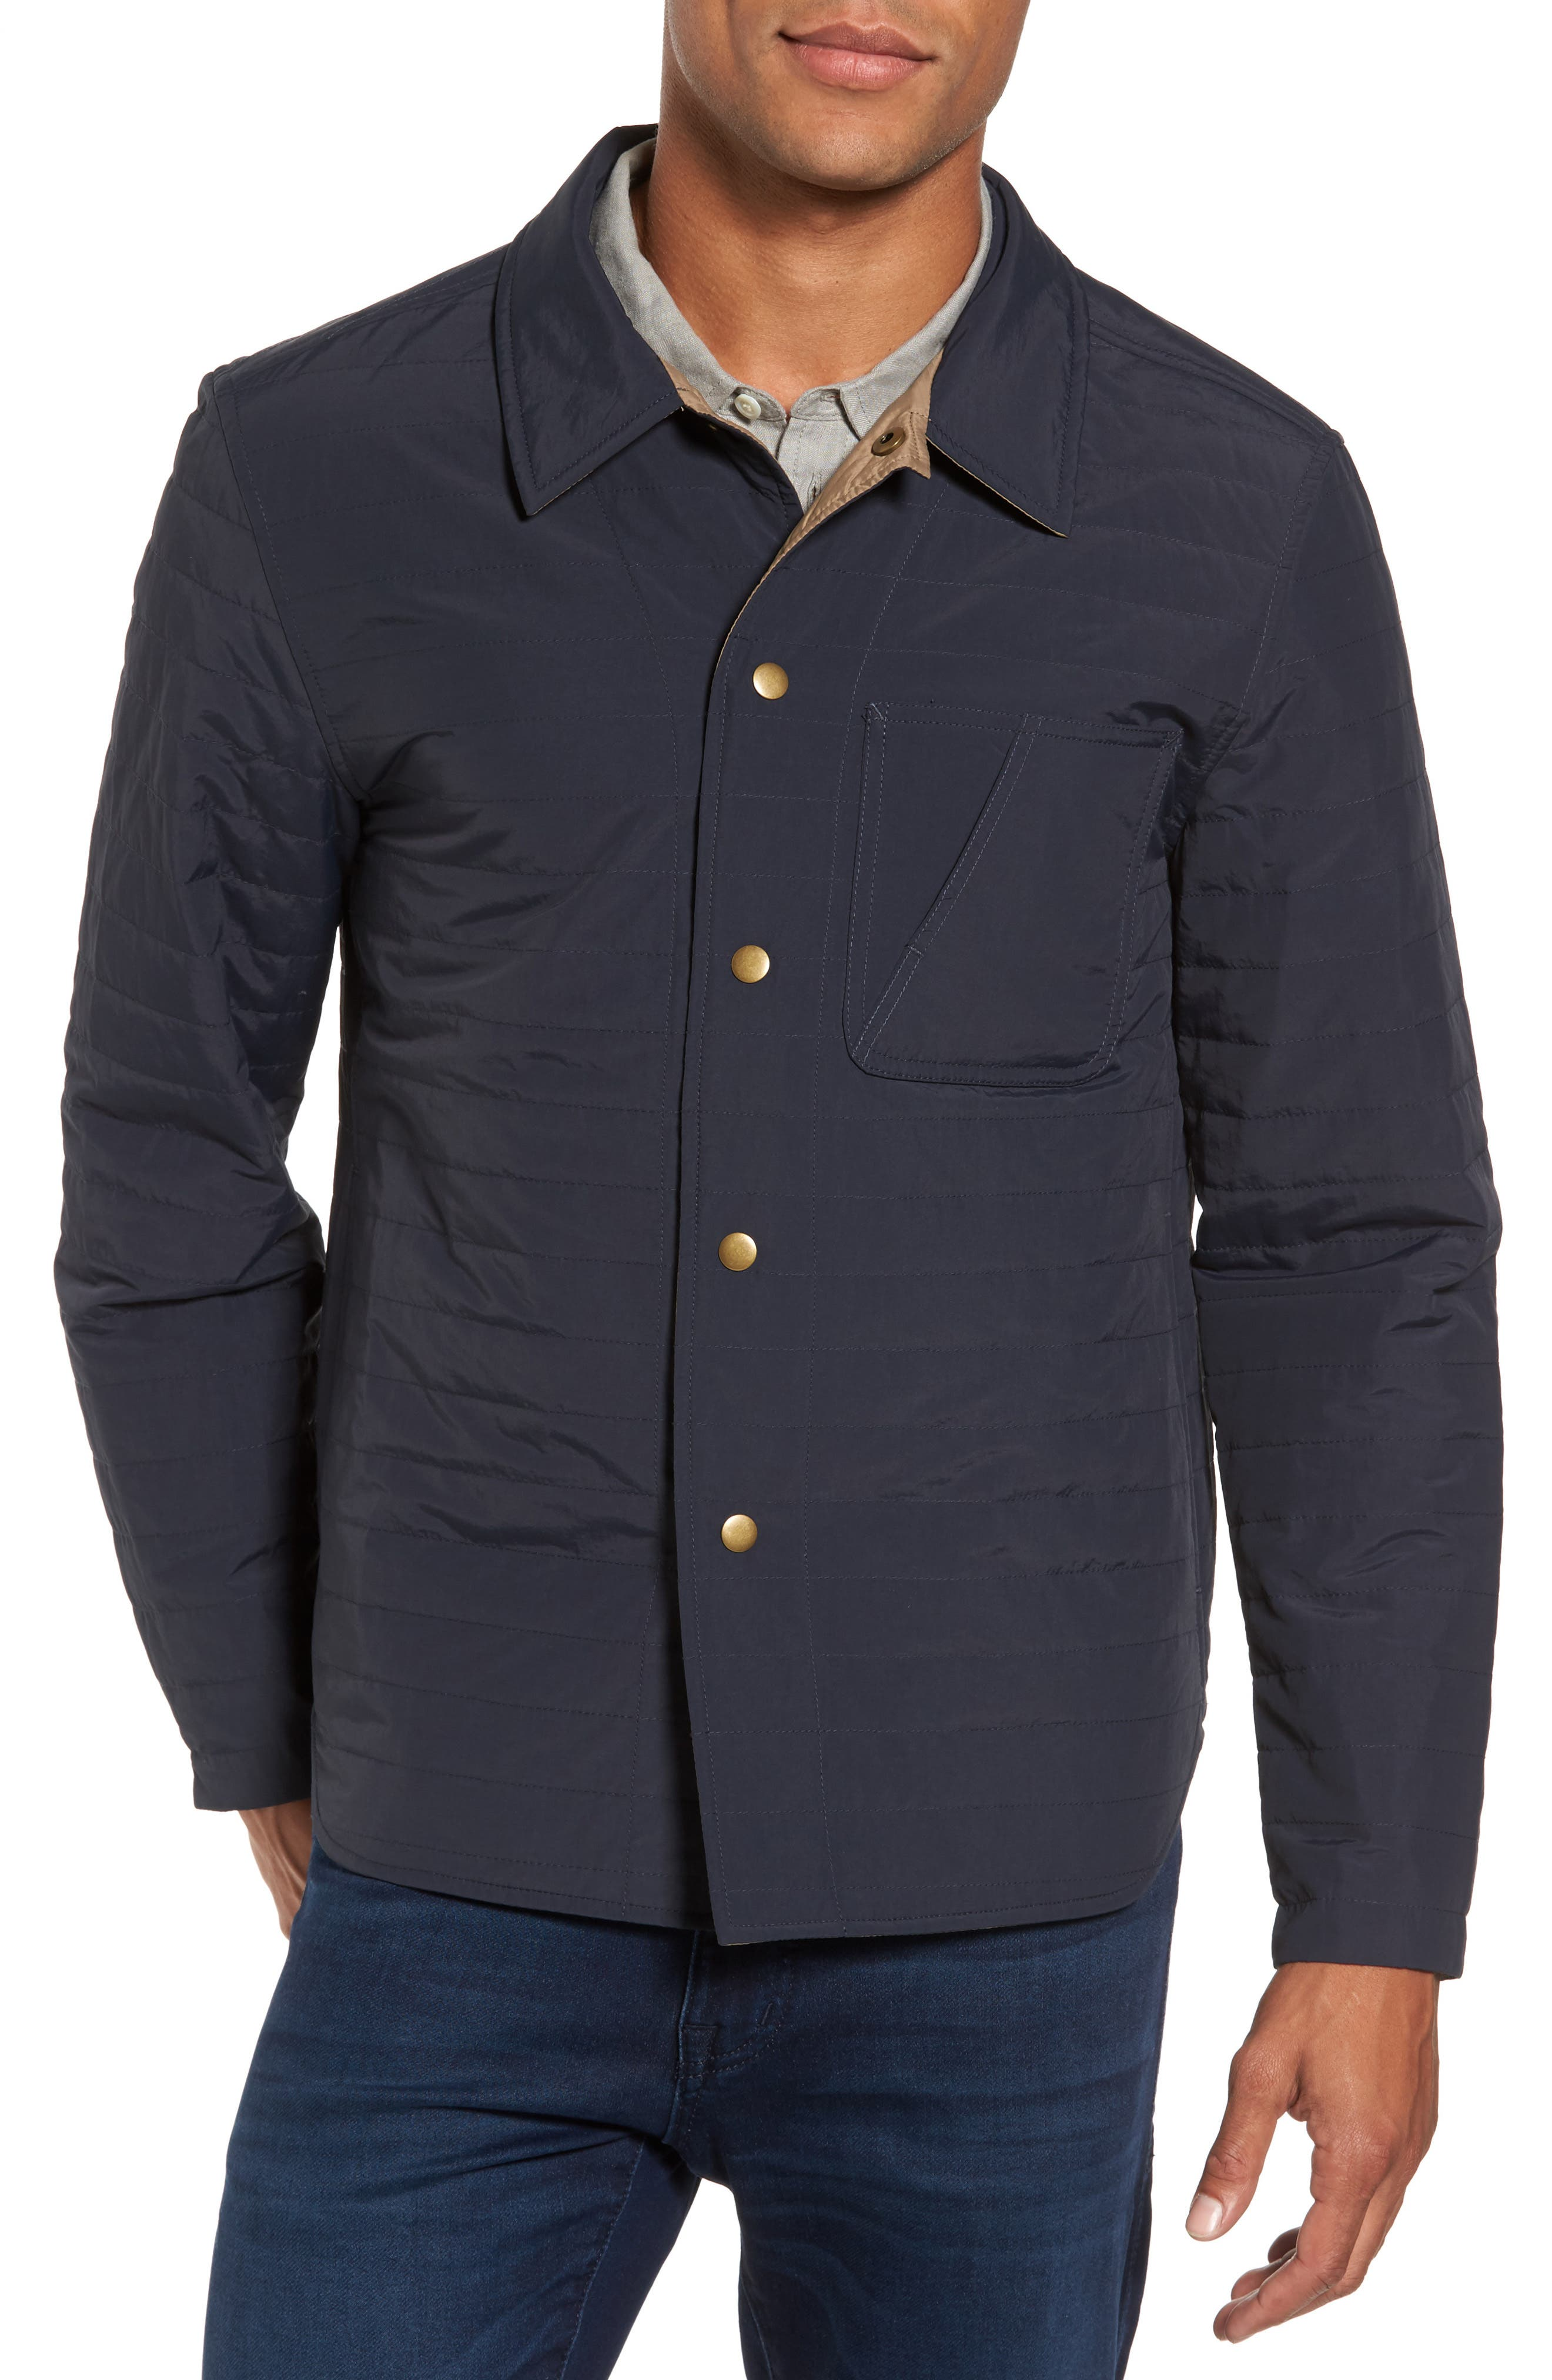 Leroy Quilted Shirt Jacket,                         Main,                         color, Navy